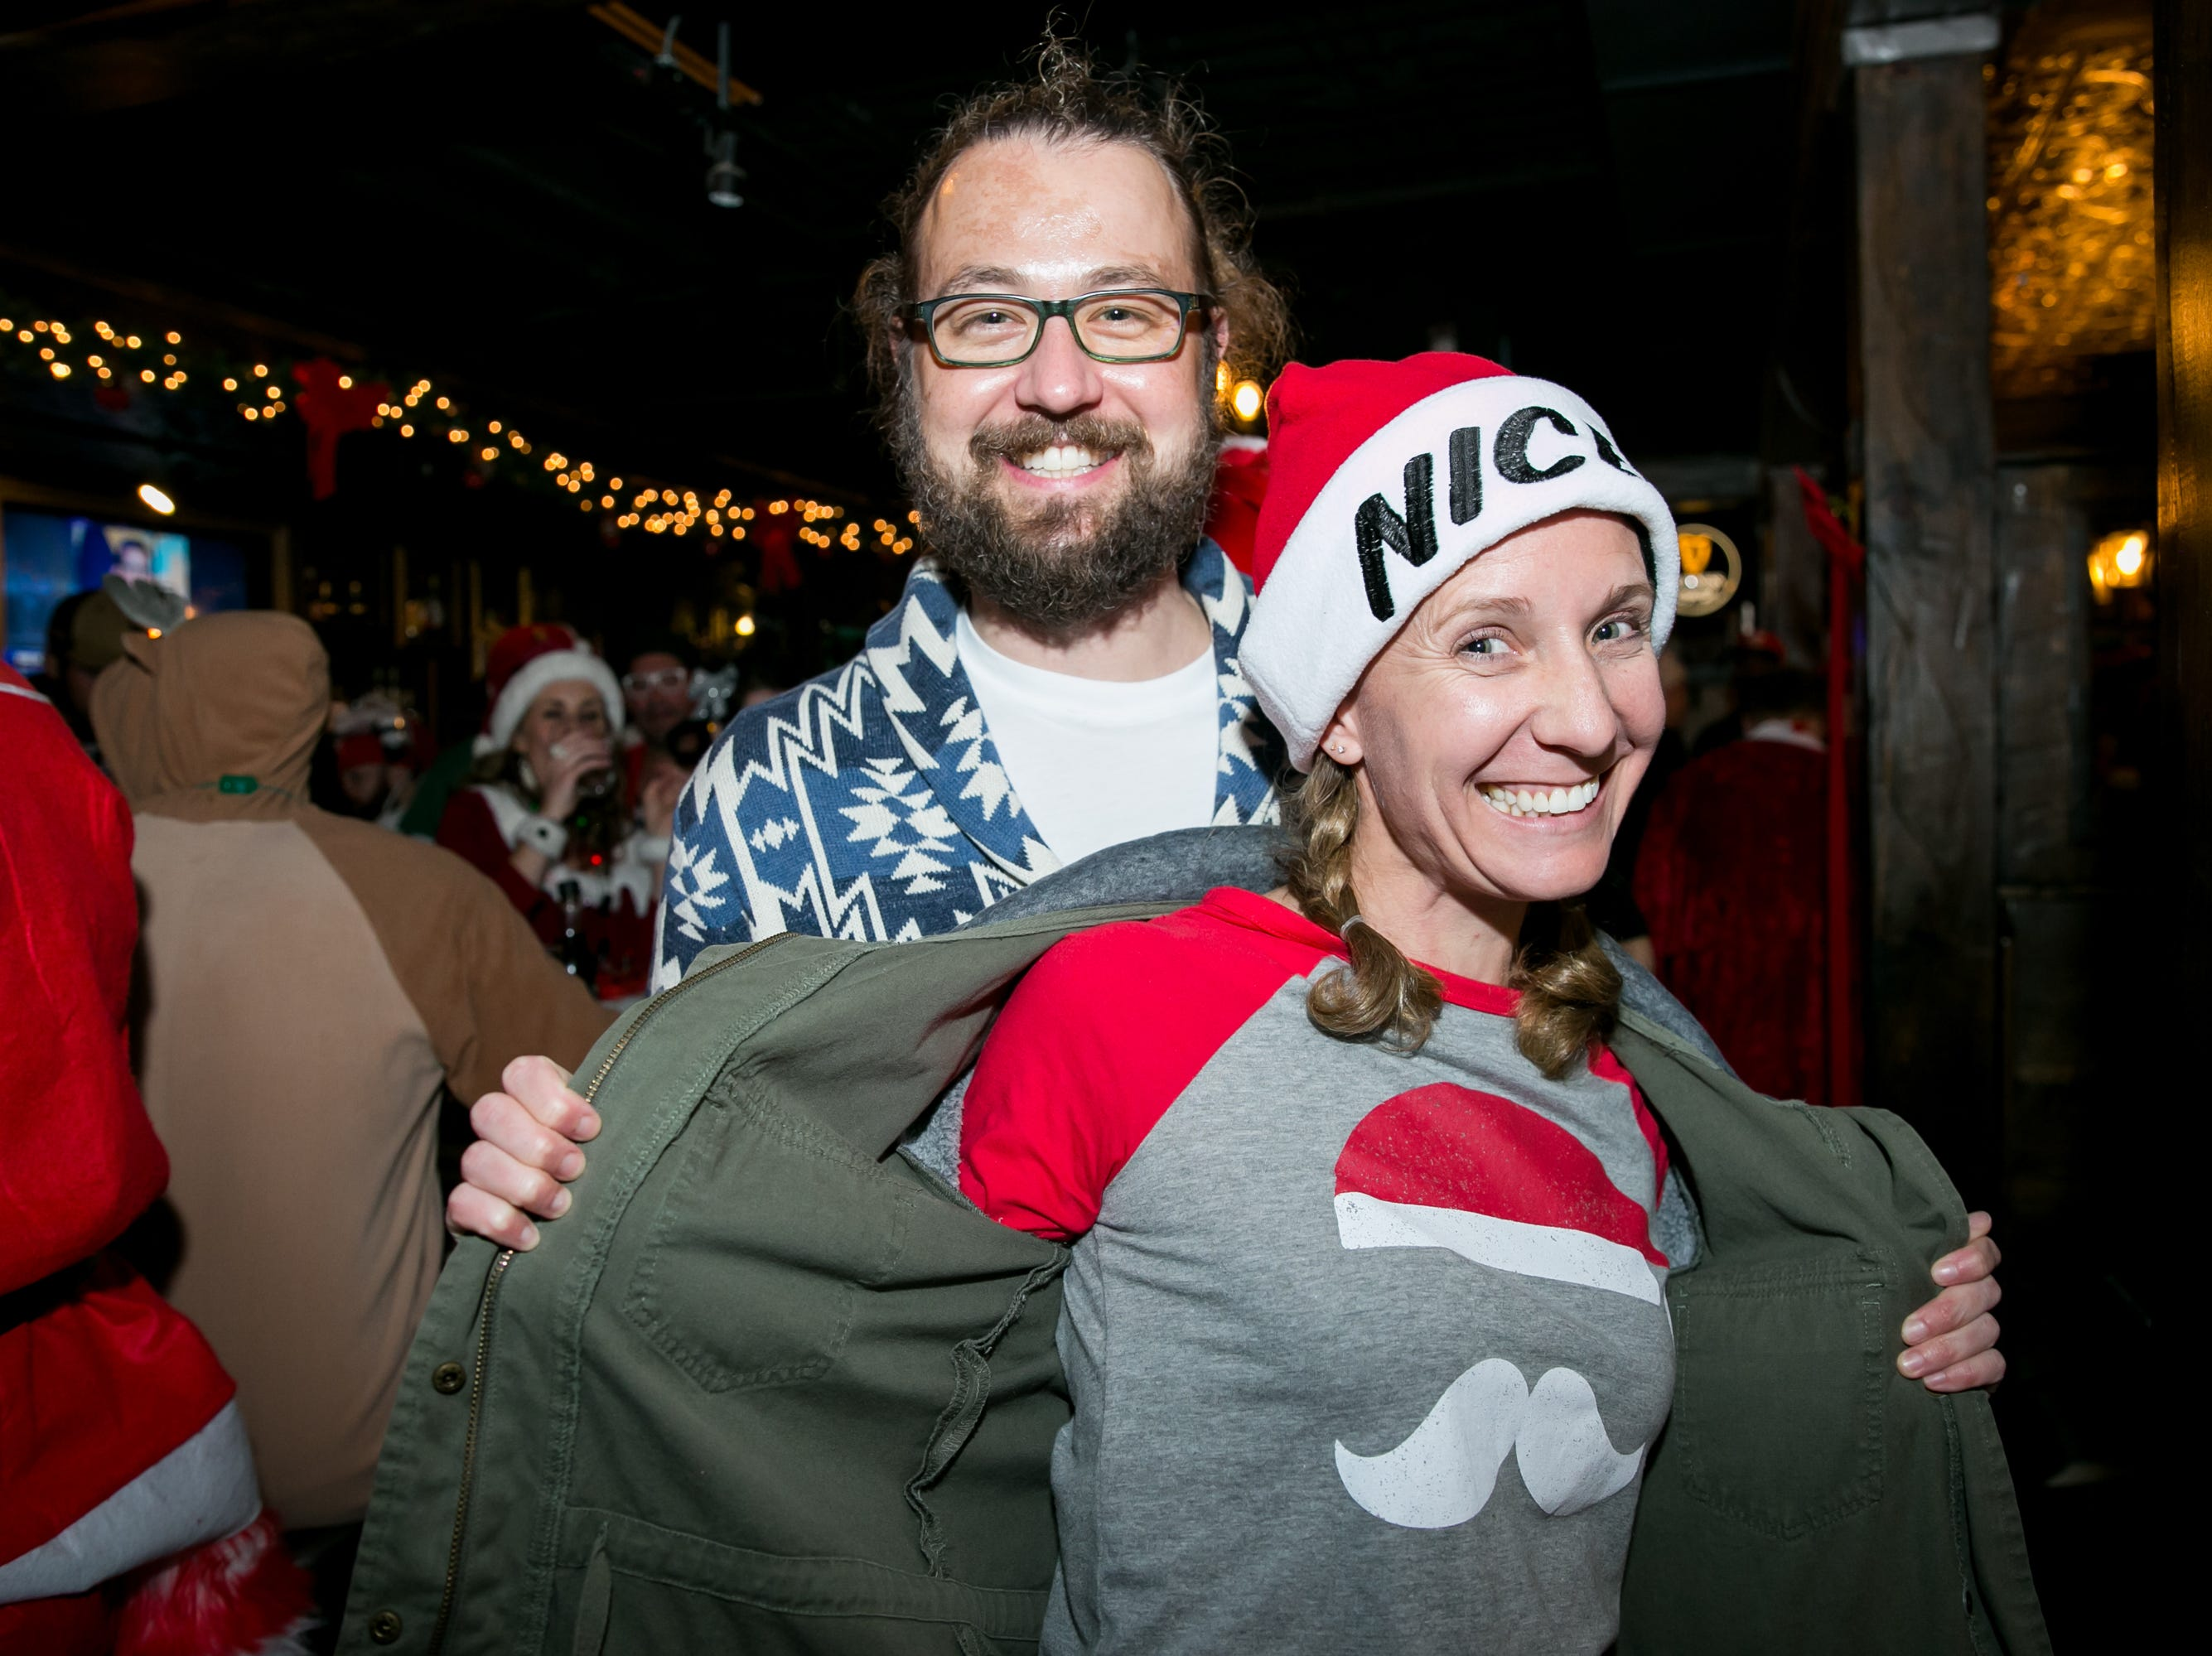 These two made Santa's good list at The Kettle Black during Santarchy on Saturday, December 8, 2018.